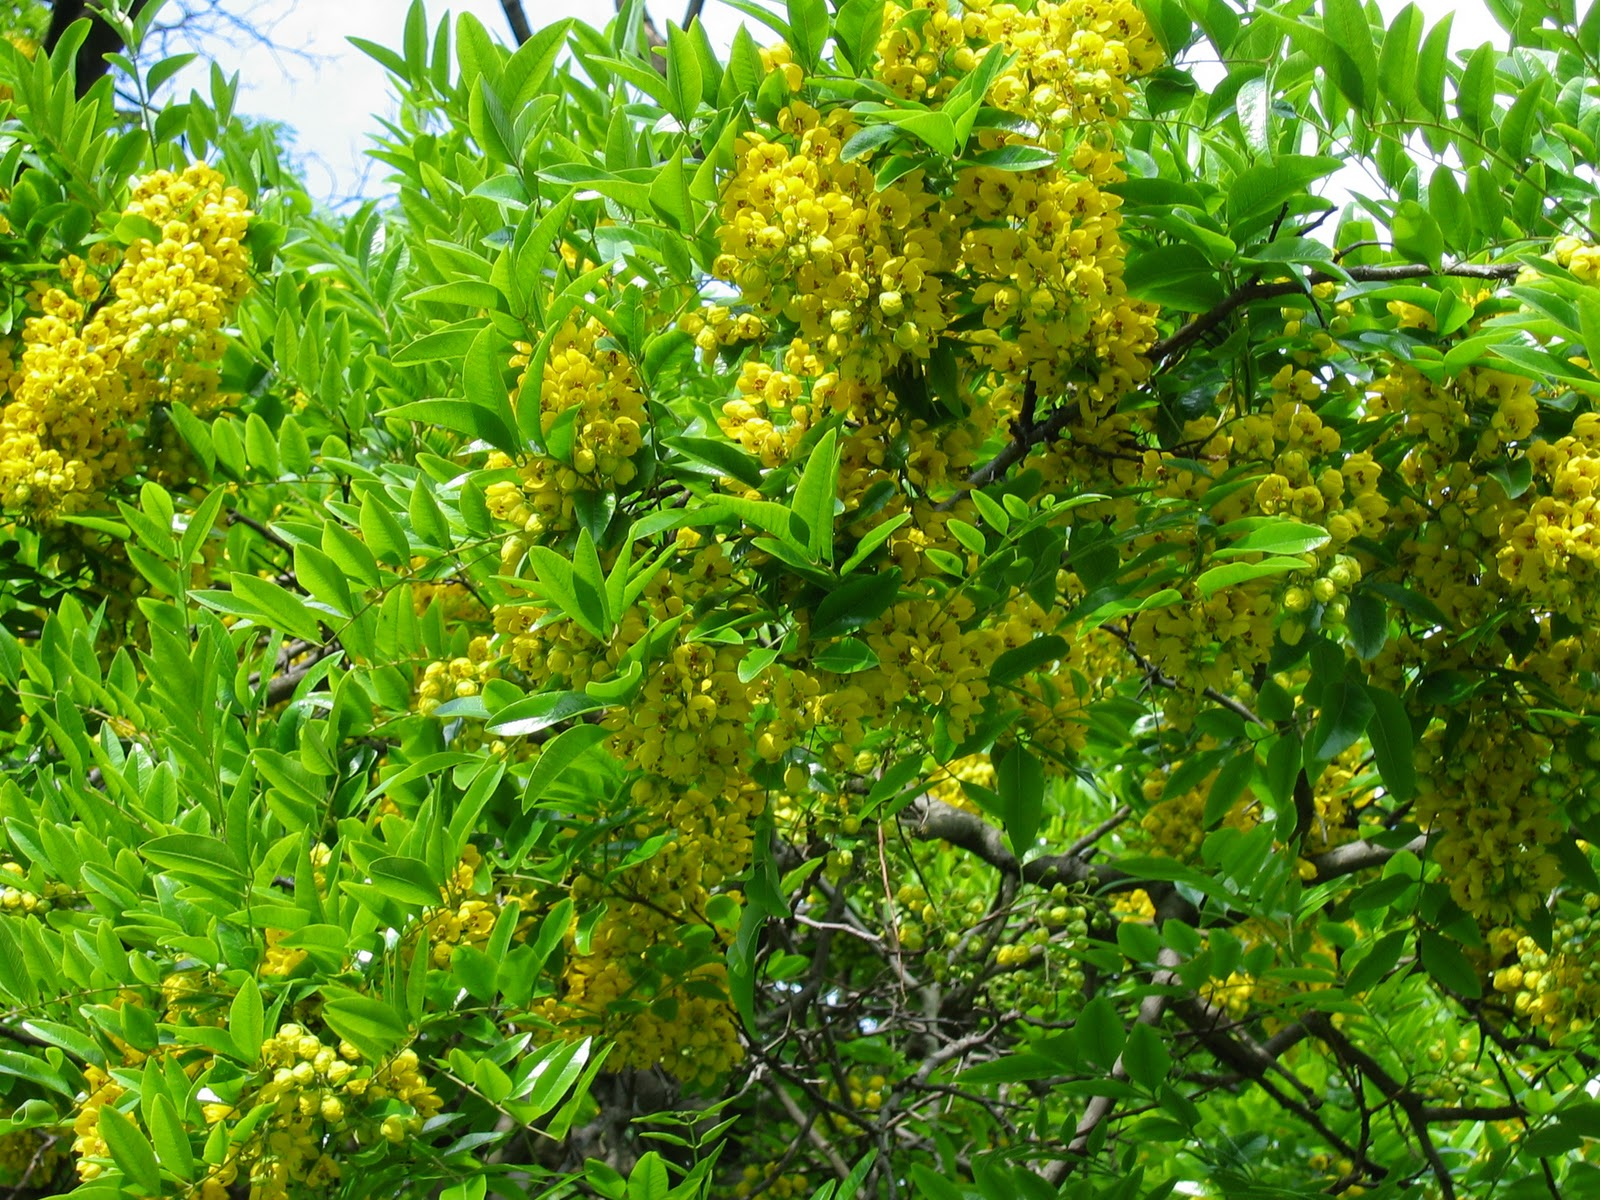 This Beautiful Tree Can Reach 20 M High And When In Flower It S Chock Full Of Rich Yellow Flowers Native Laburnum Or Brush Cia Marksiana